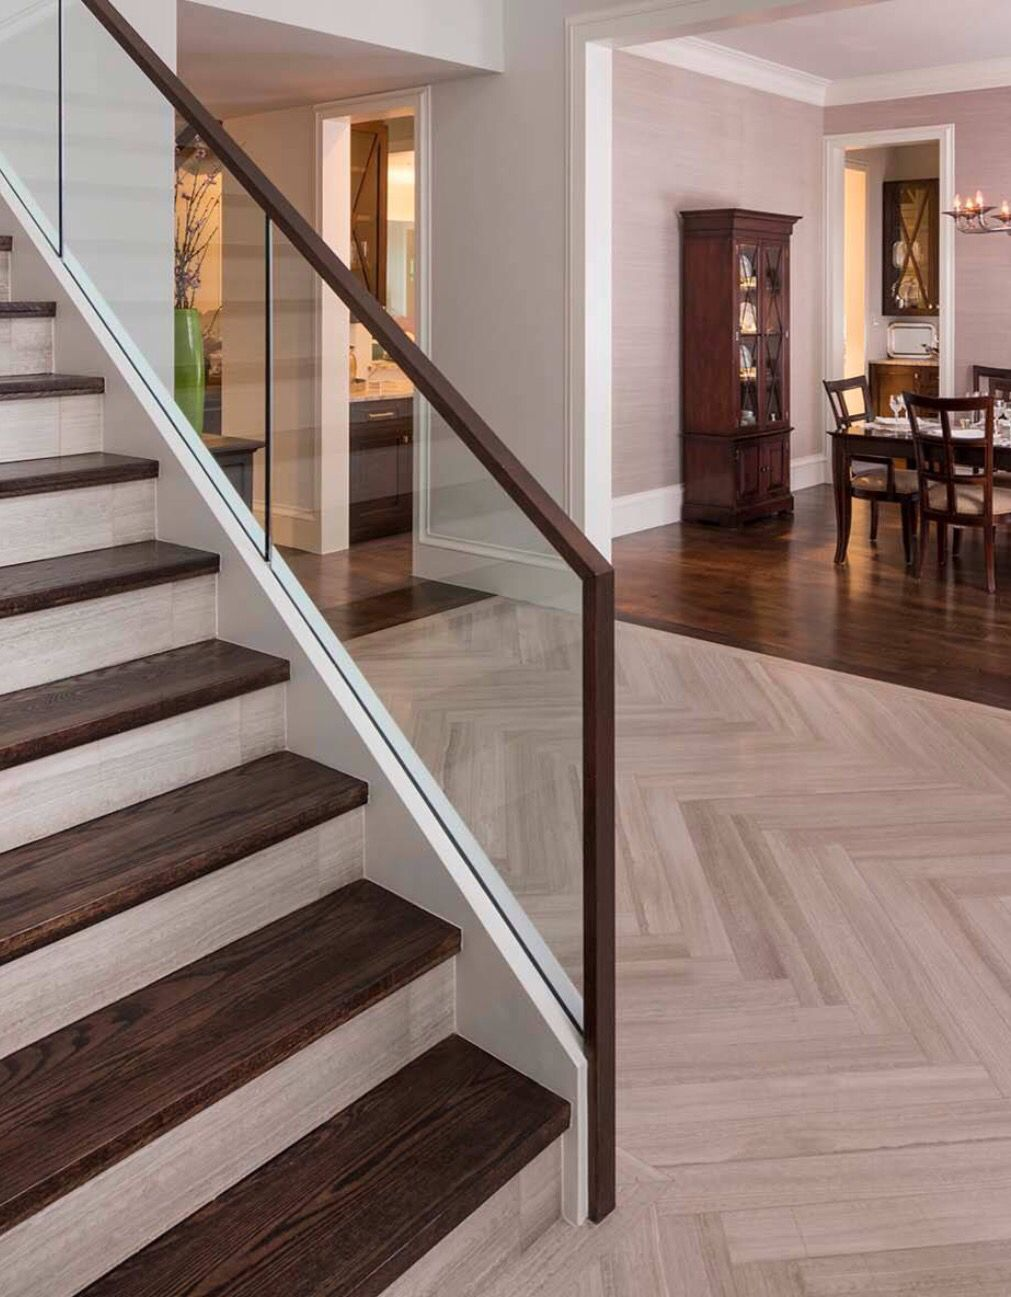 Tile And Wood On Stairs Interior Stair Railing Stair | Wooden Stairs Railing Design With Glass